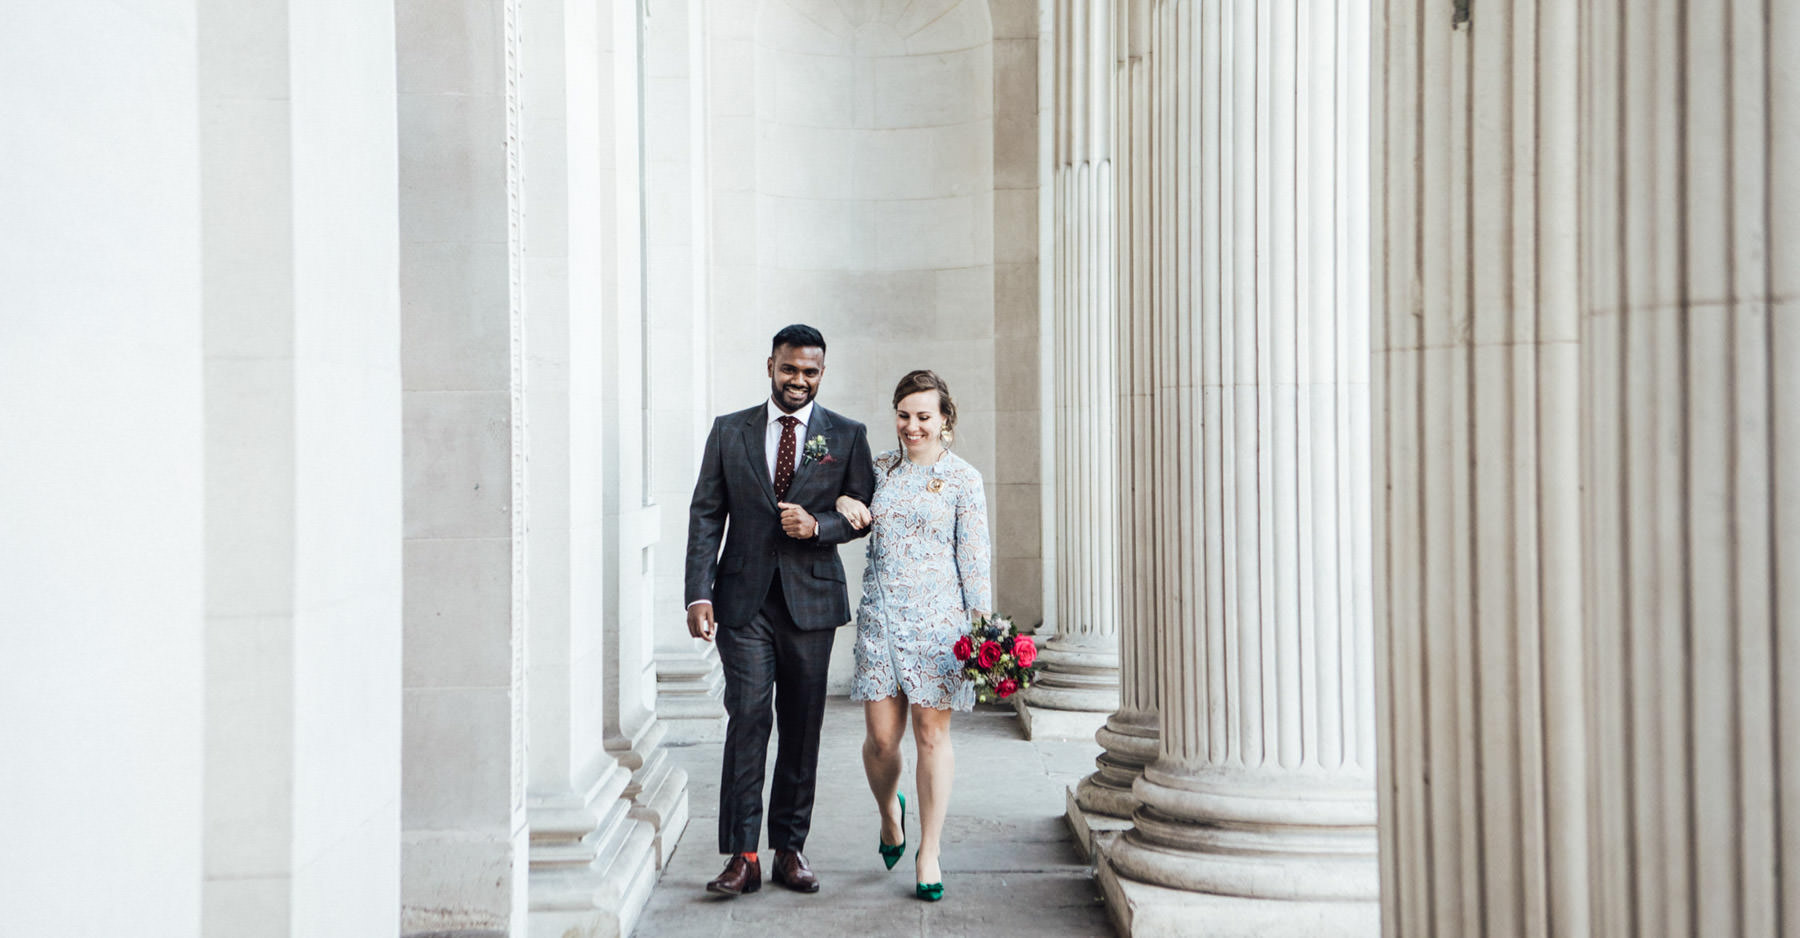 Marylebone Westminster room wedding photography | Town Hall wedding